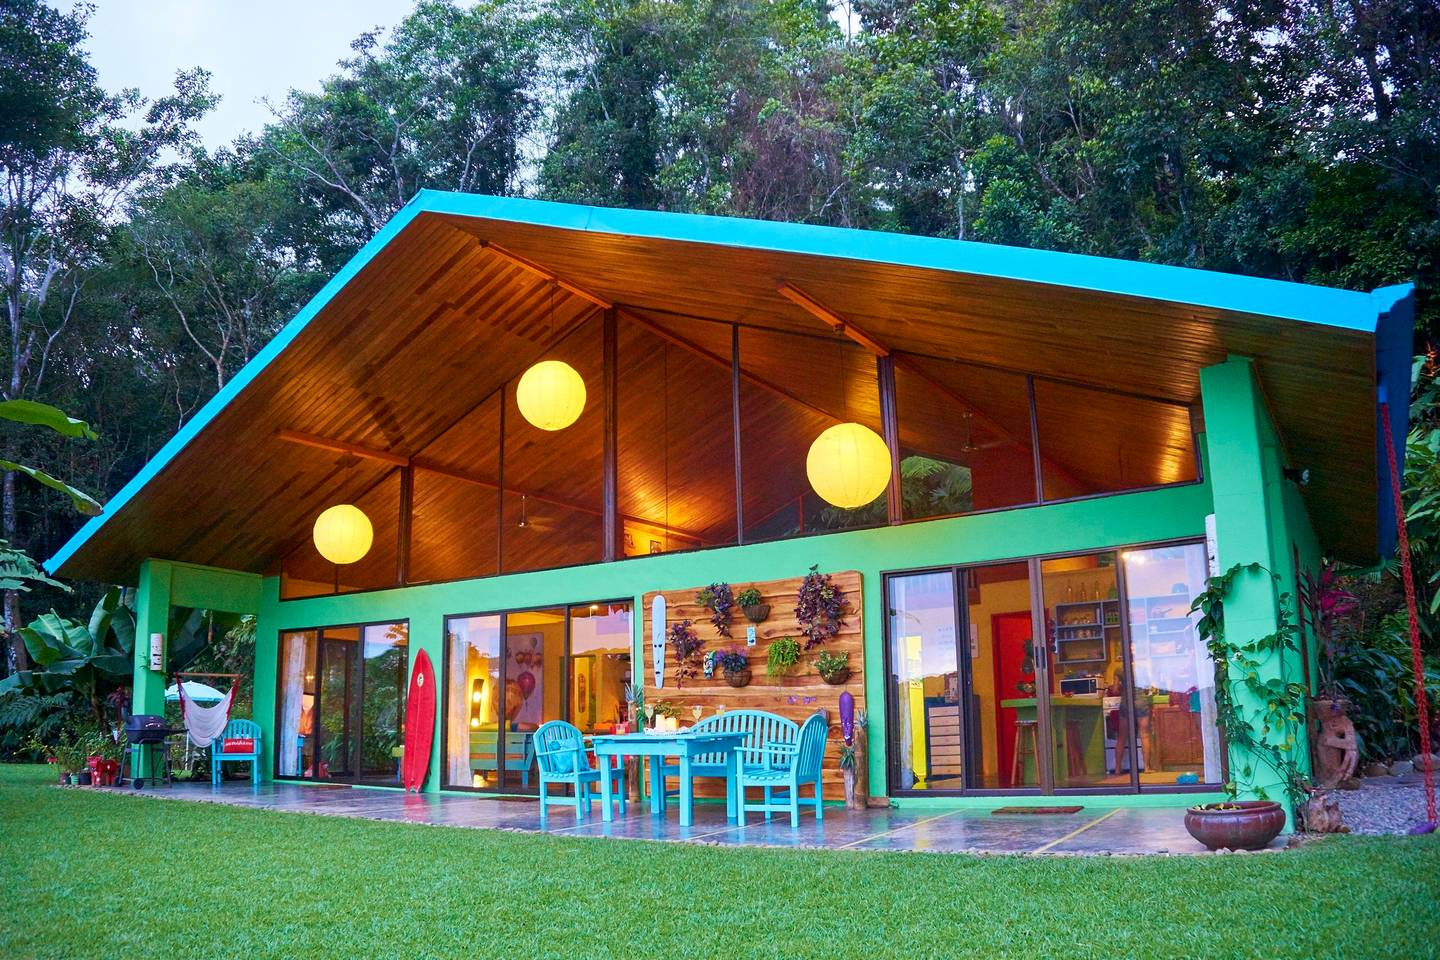 COLORFUL AND FUN OCEAN VIEW BUNGALOW IN A GREAT NEIGHBORHOOD!!!